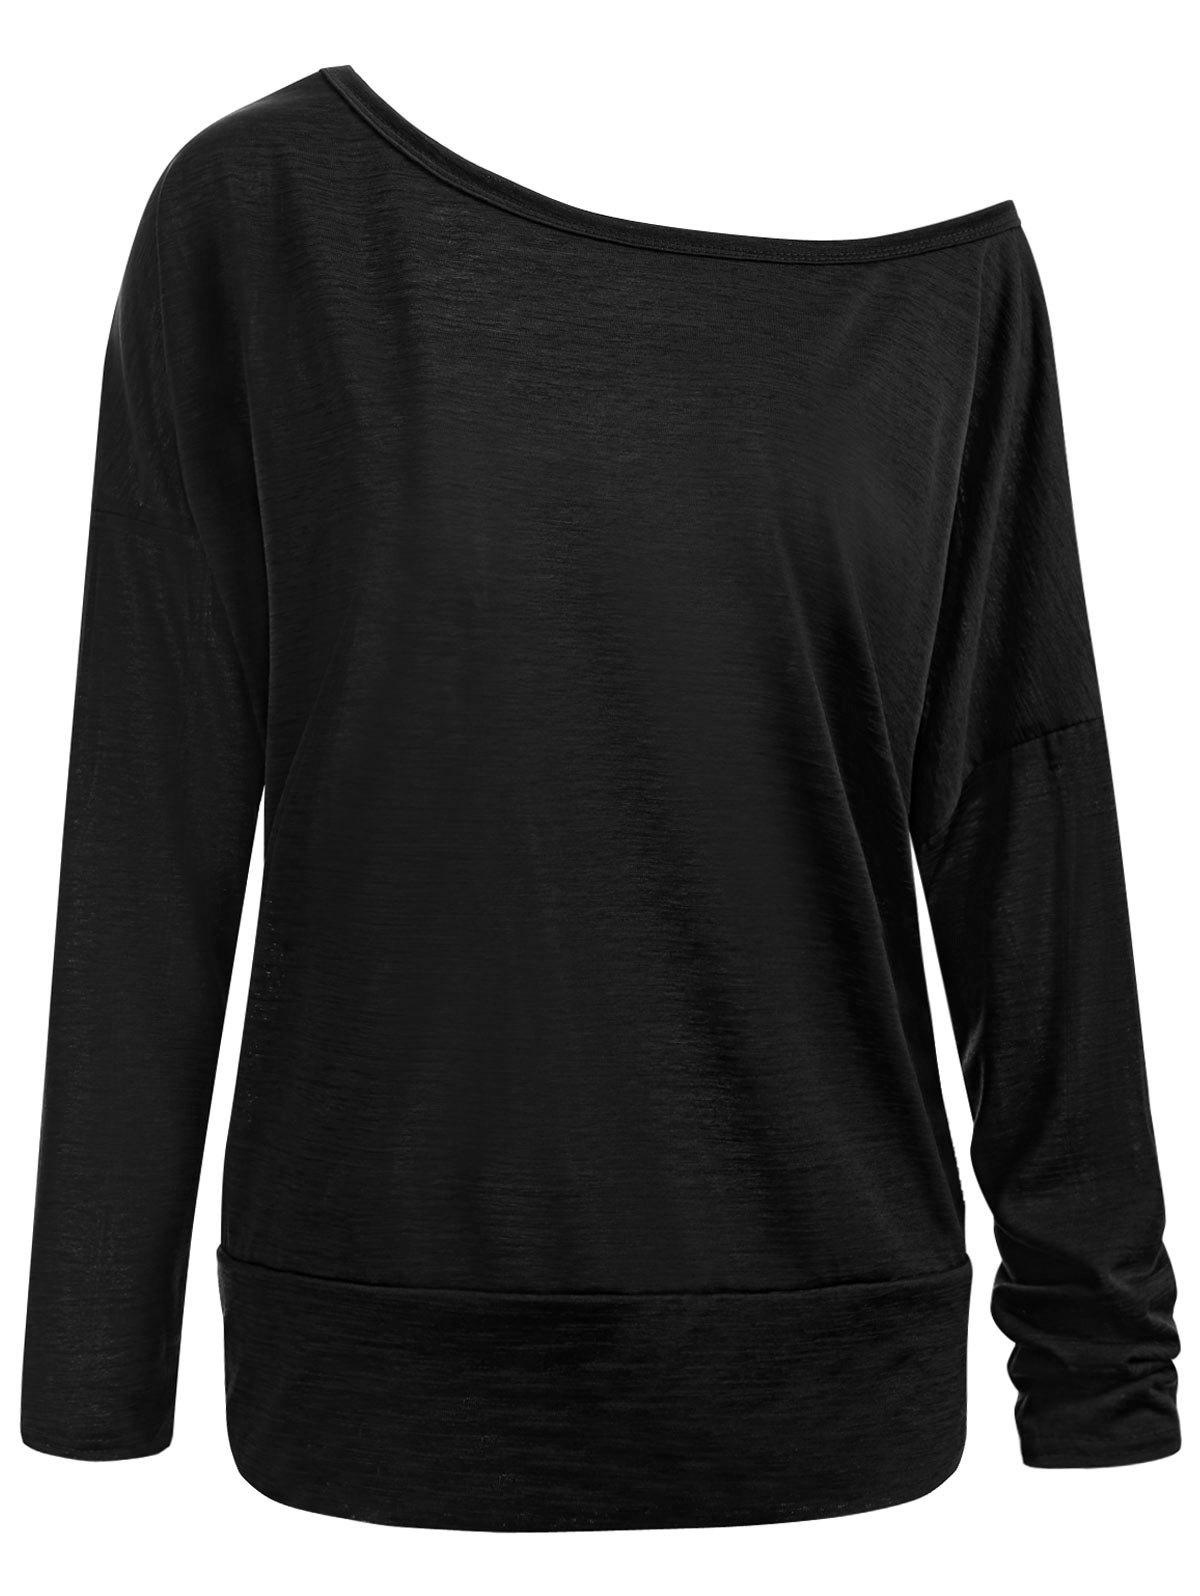 Plus Size Skew Neck Long Sleeve Basic T-shirt, Black